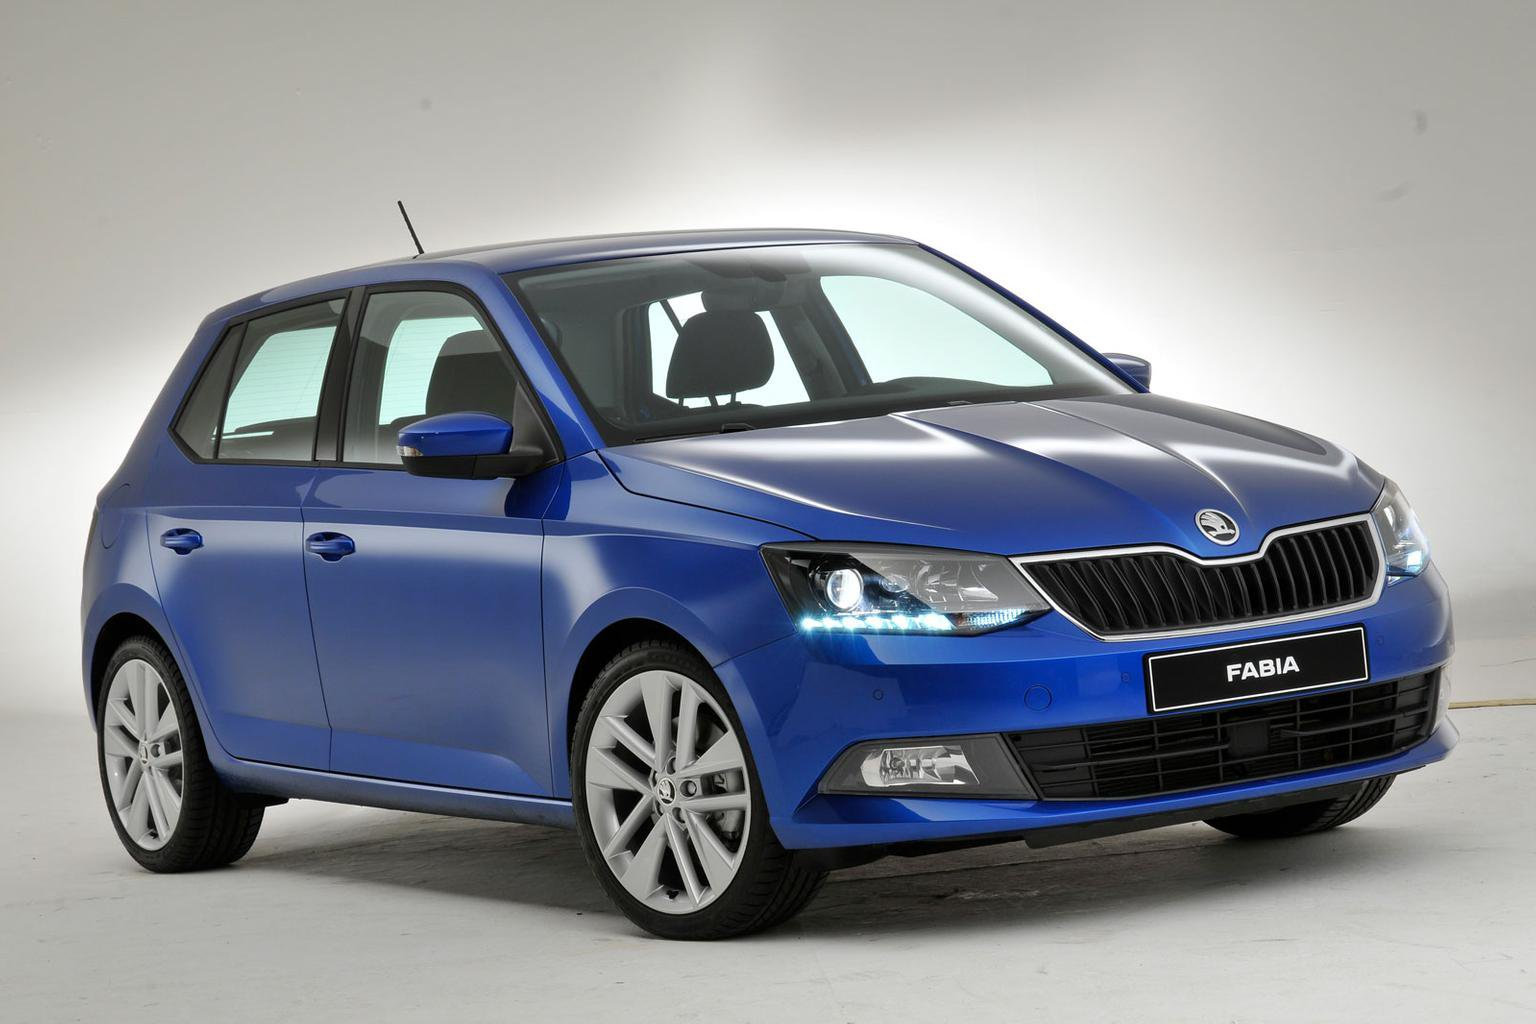 New 2015 Skoda Fabia and Skoda Fabia Estate - everything we know so far